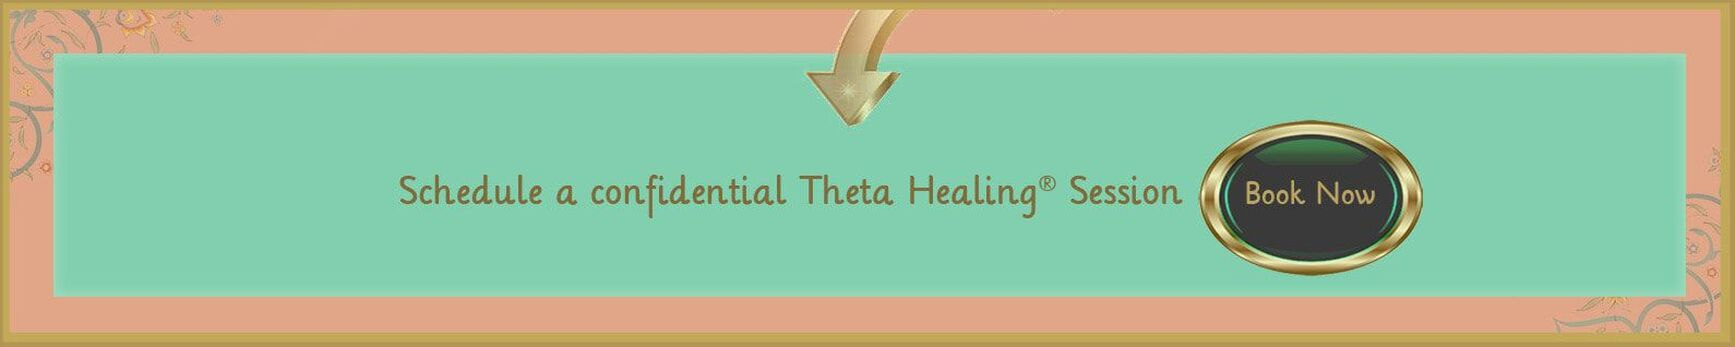 theta healing uk sessions